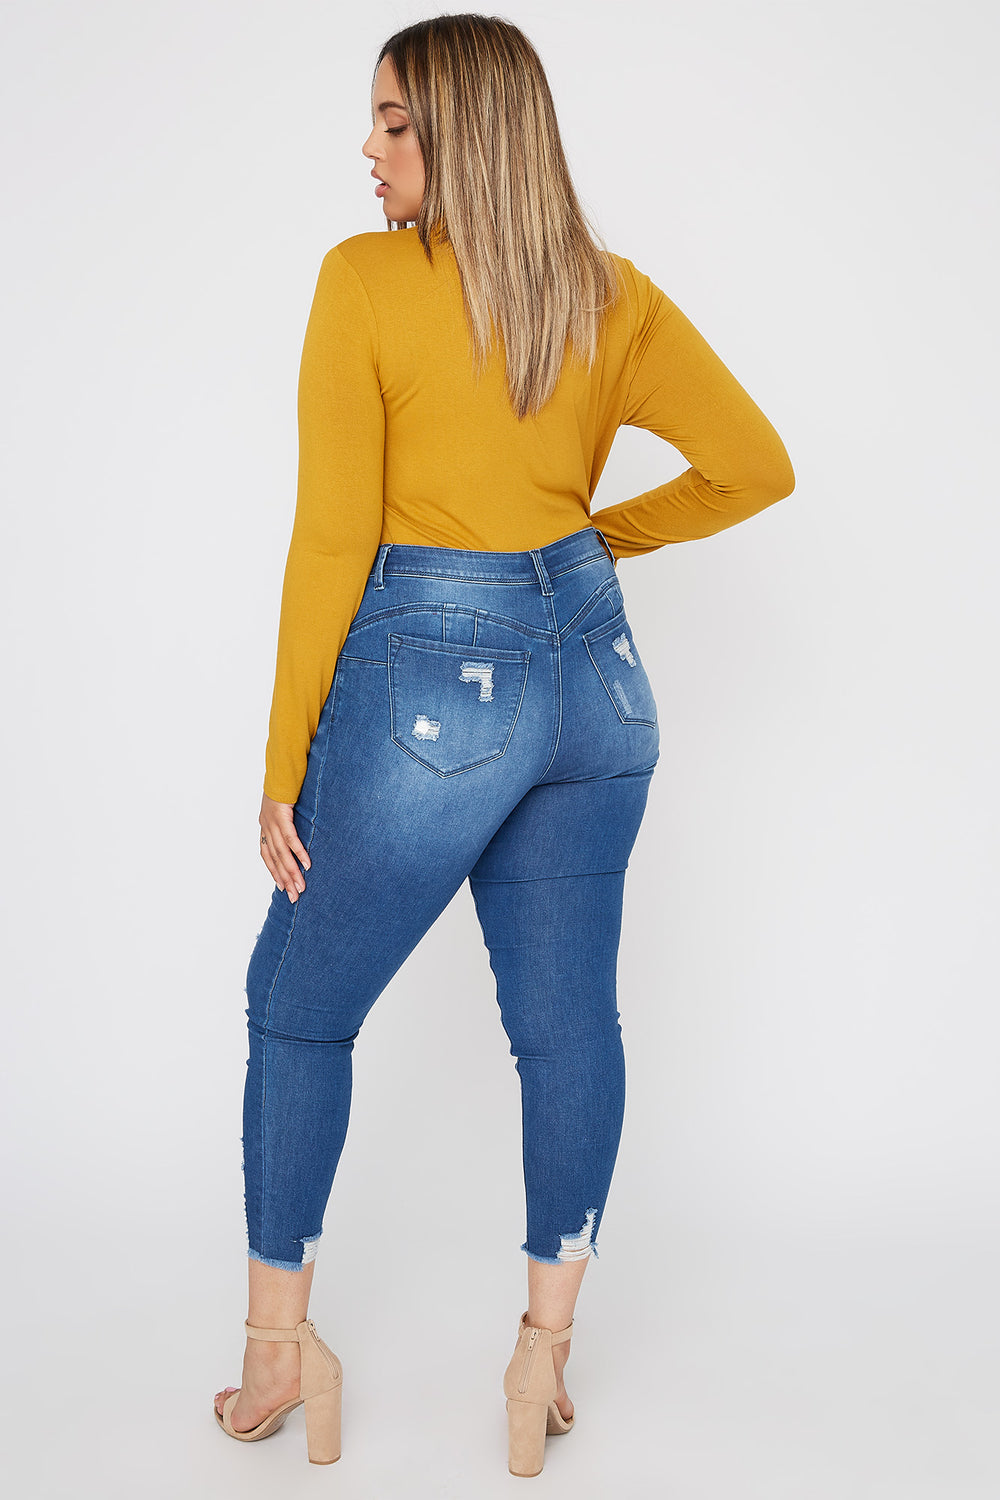 Plus Size Mock Neck Long Sleeve Mustard